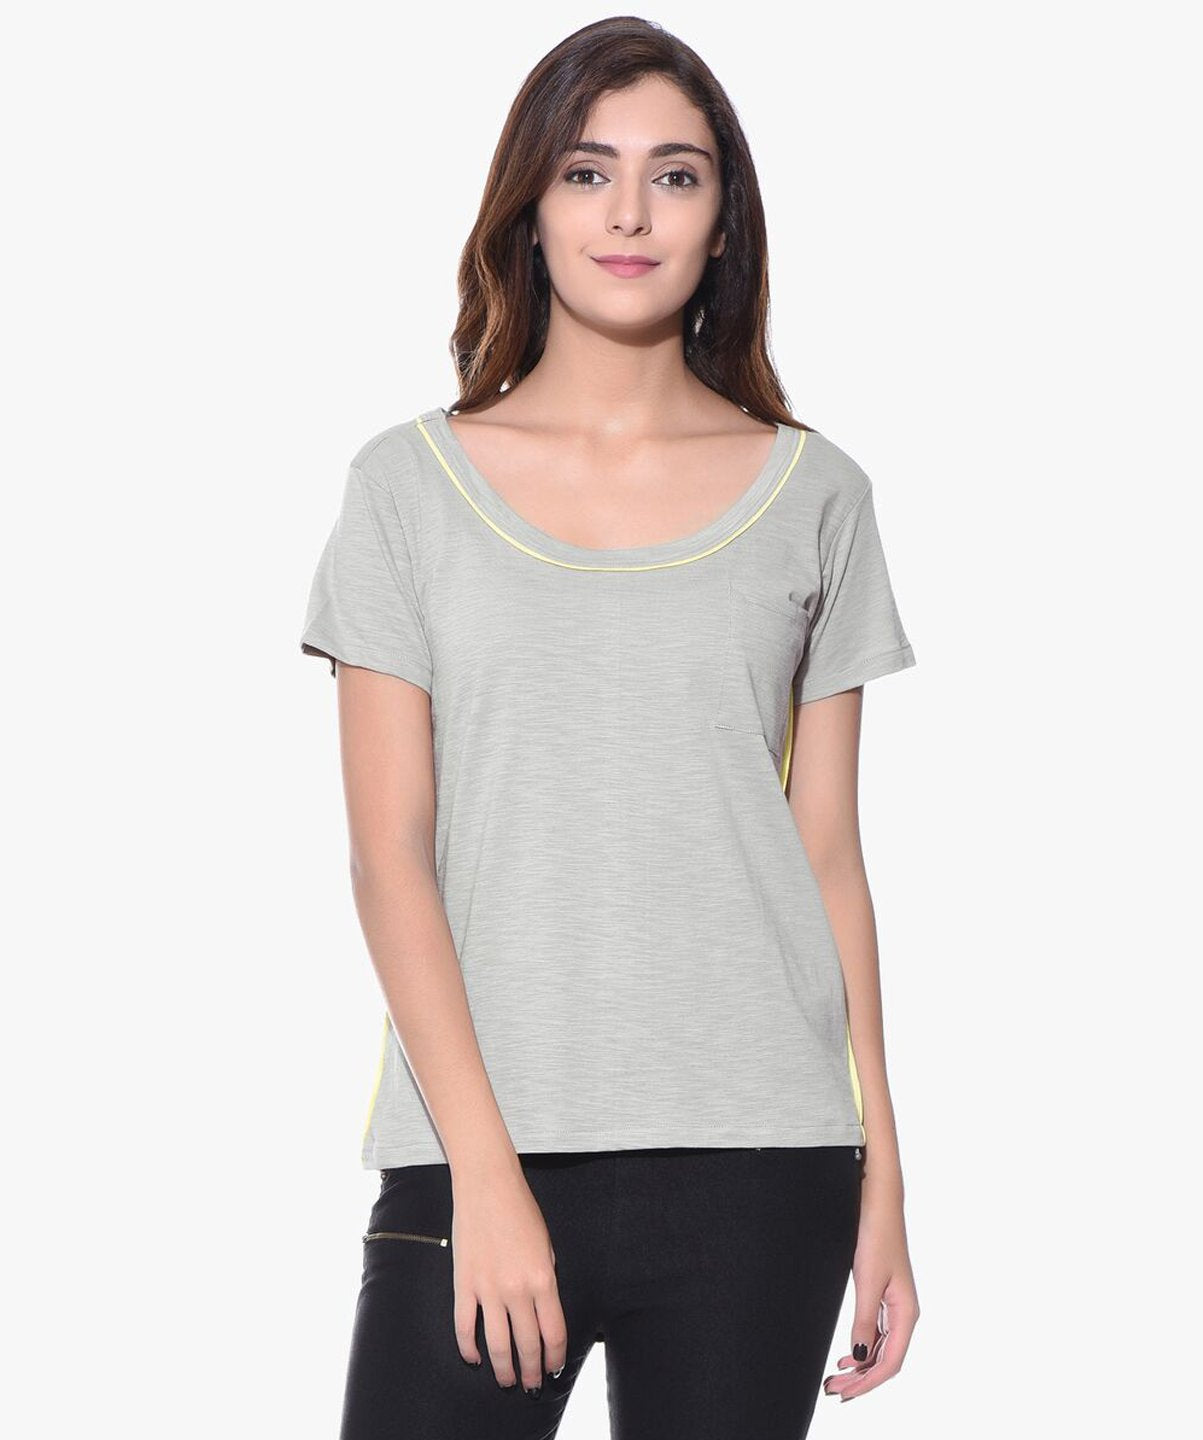 Uptownie Plus Solid Grey Casual T-shirt (cotton) 1 summer sale